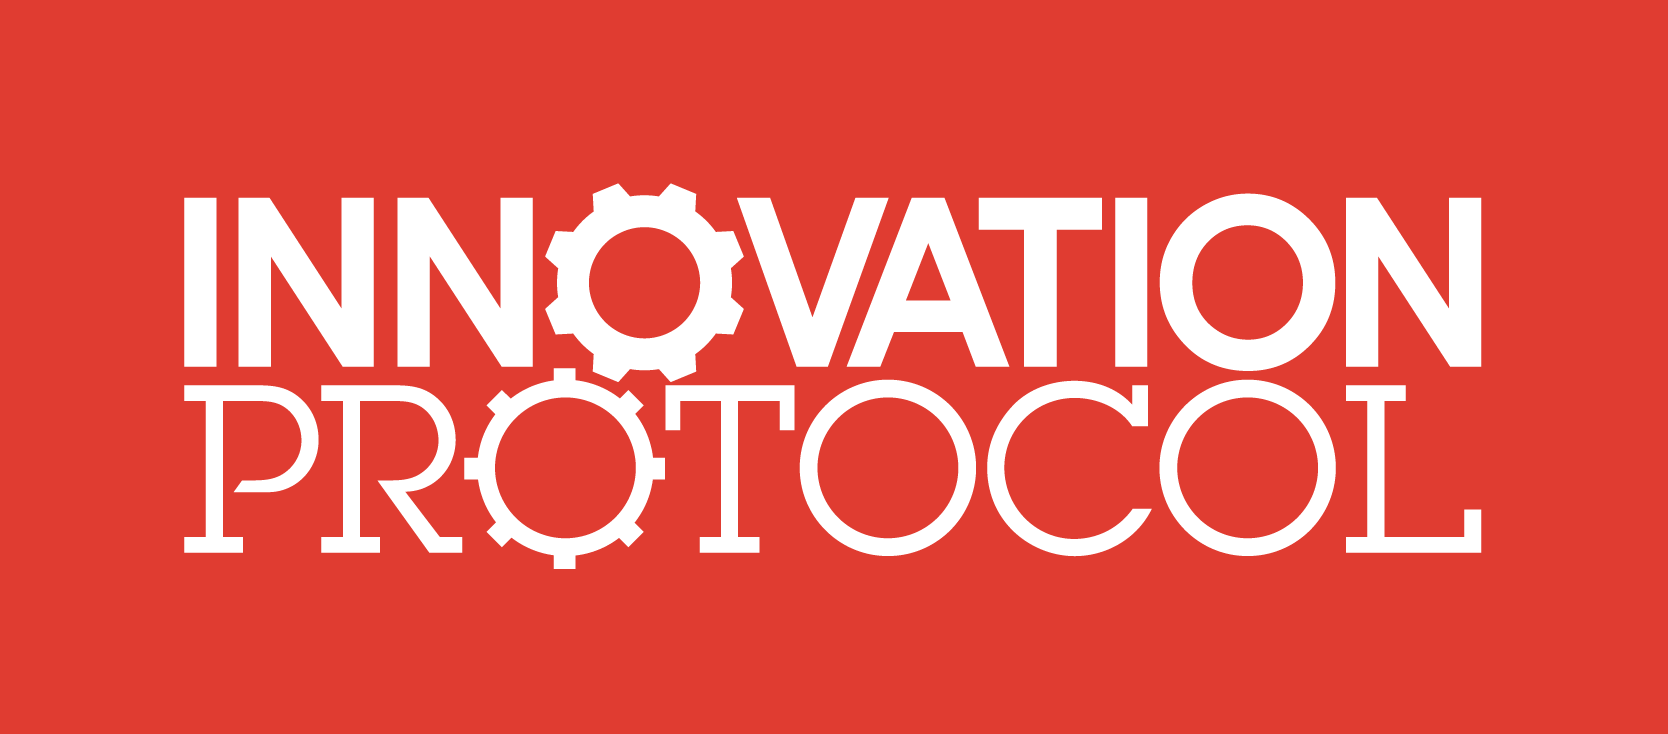 Innovation Protocol